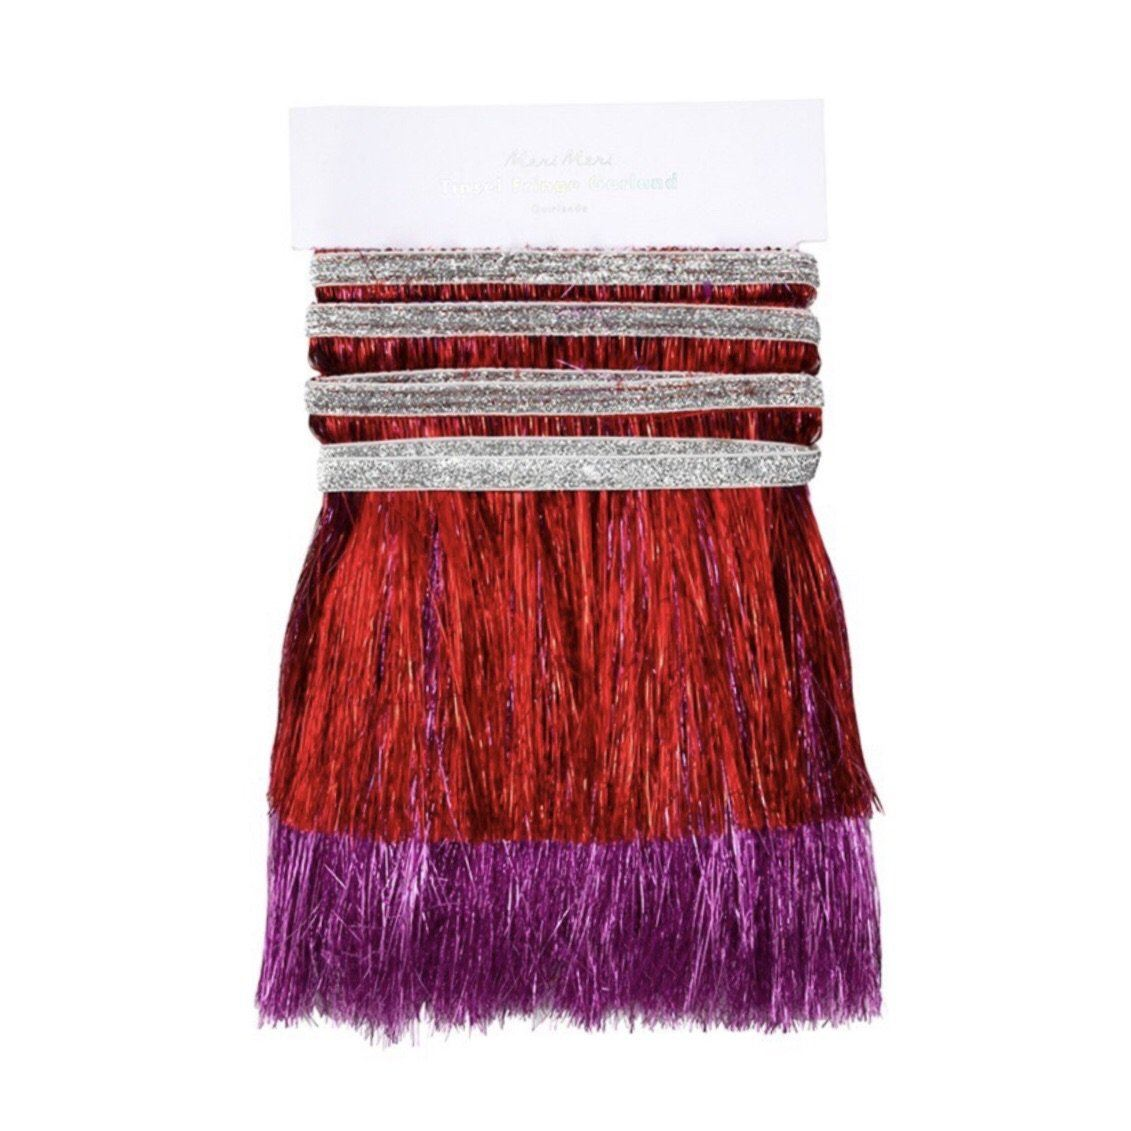 FRINGE GARLAND - RED + PINK, Tassel Garland, Meri meri - Bon + Co. Party Studio